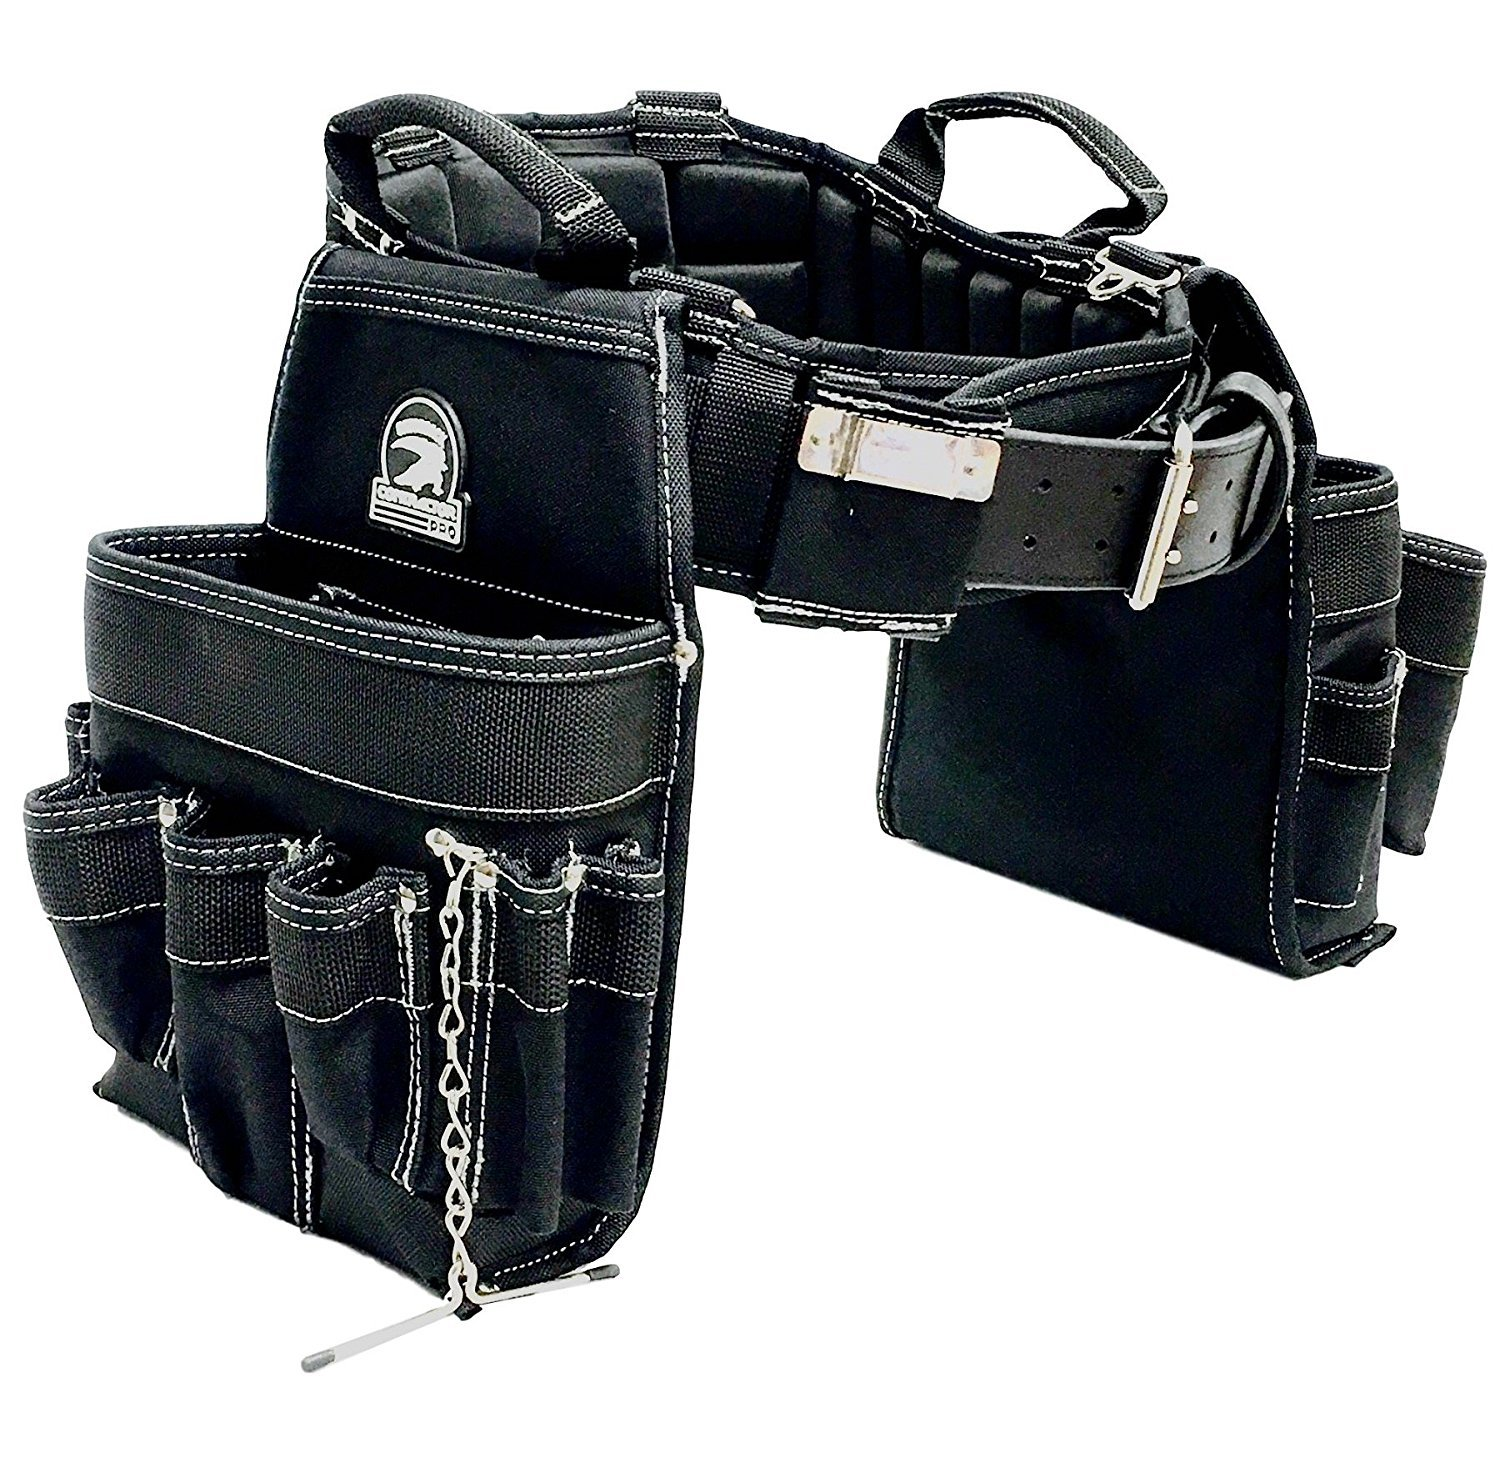 TradeGear XL Electrician's Combo Belt & Bags, Maximum Comfort, Durable & Heavy-Duty (40-44'') Partnered with Gatorback Contractor Pro